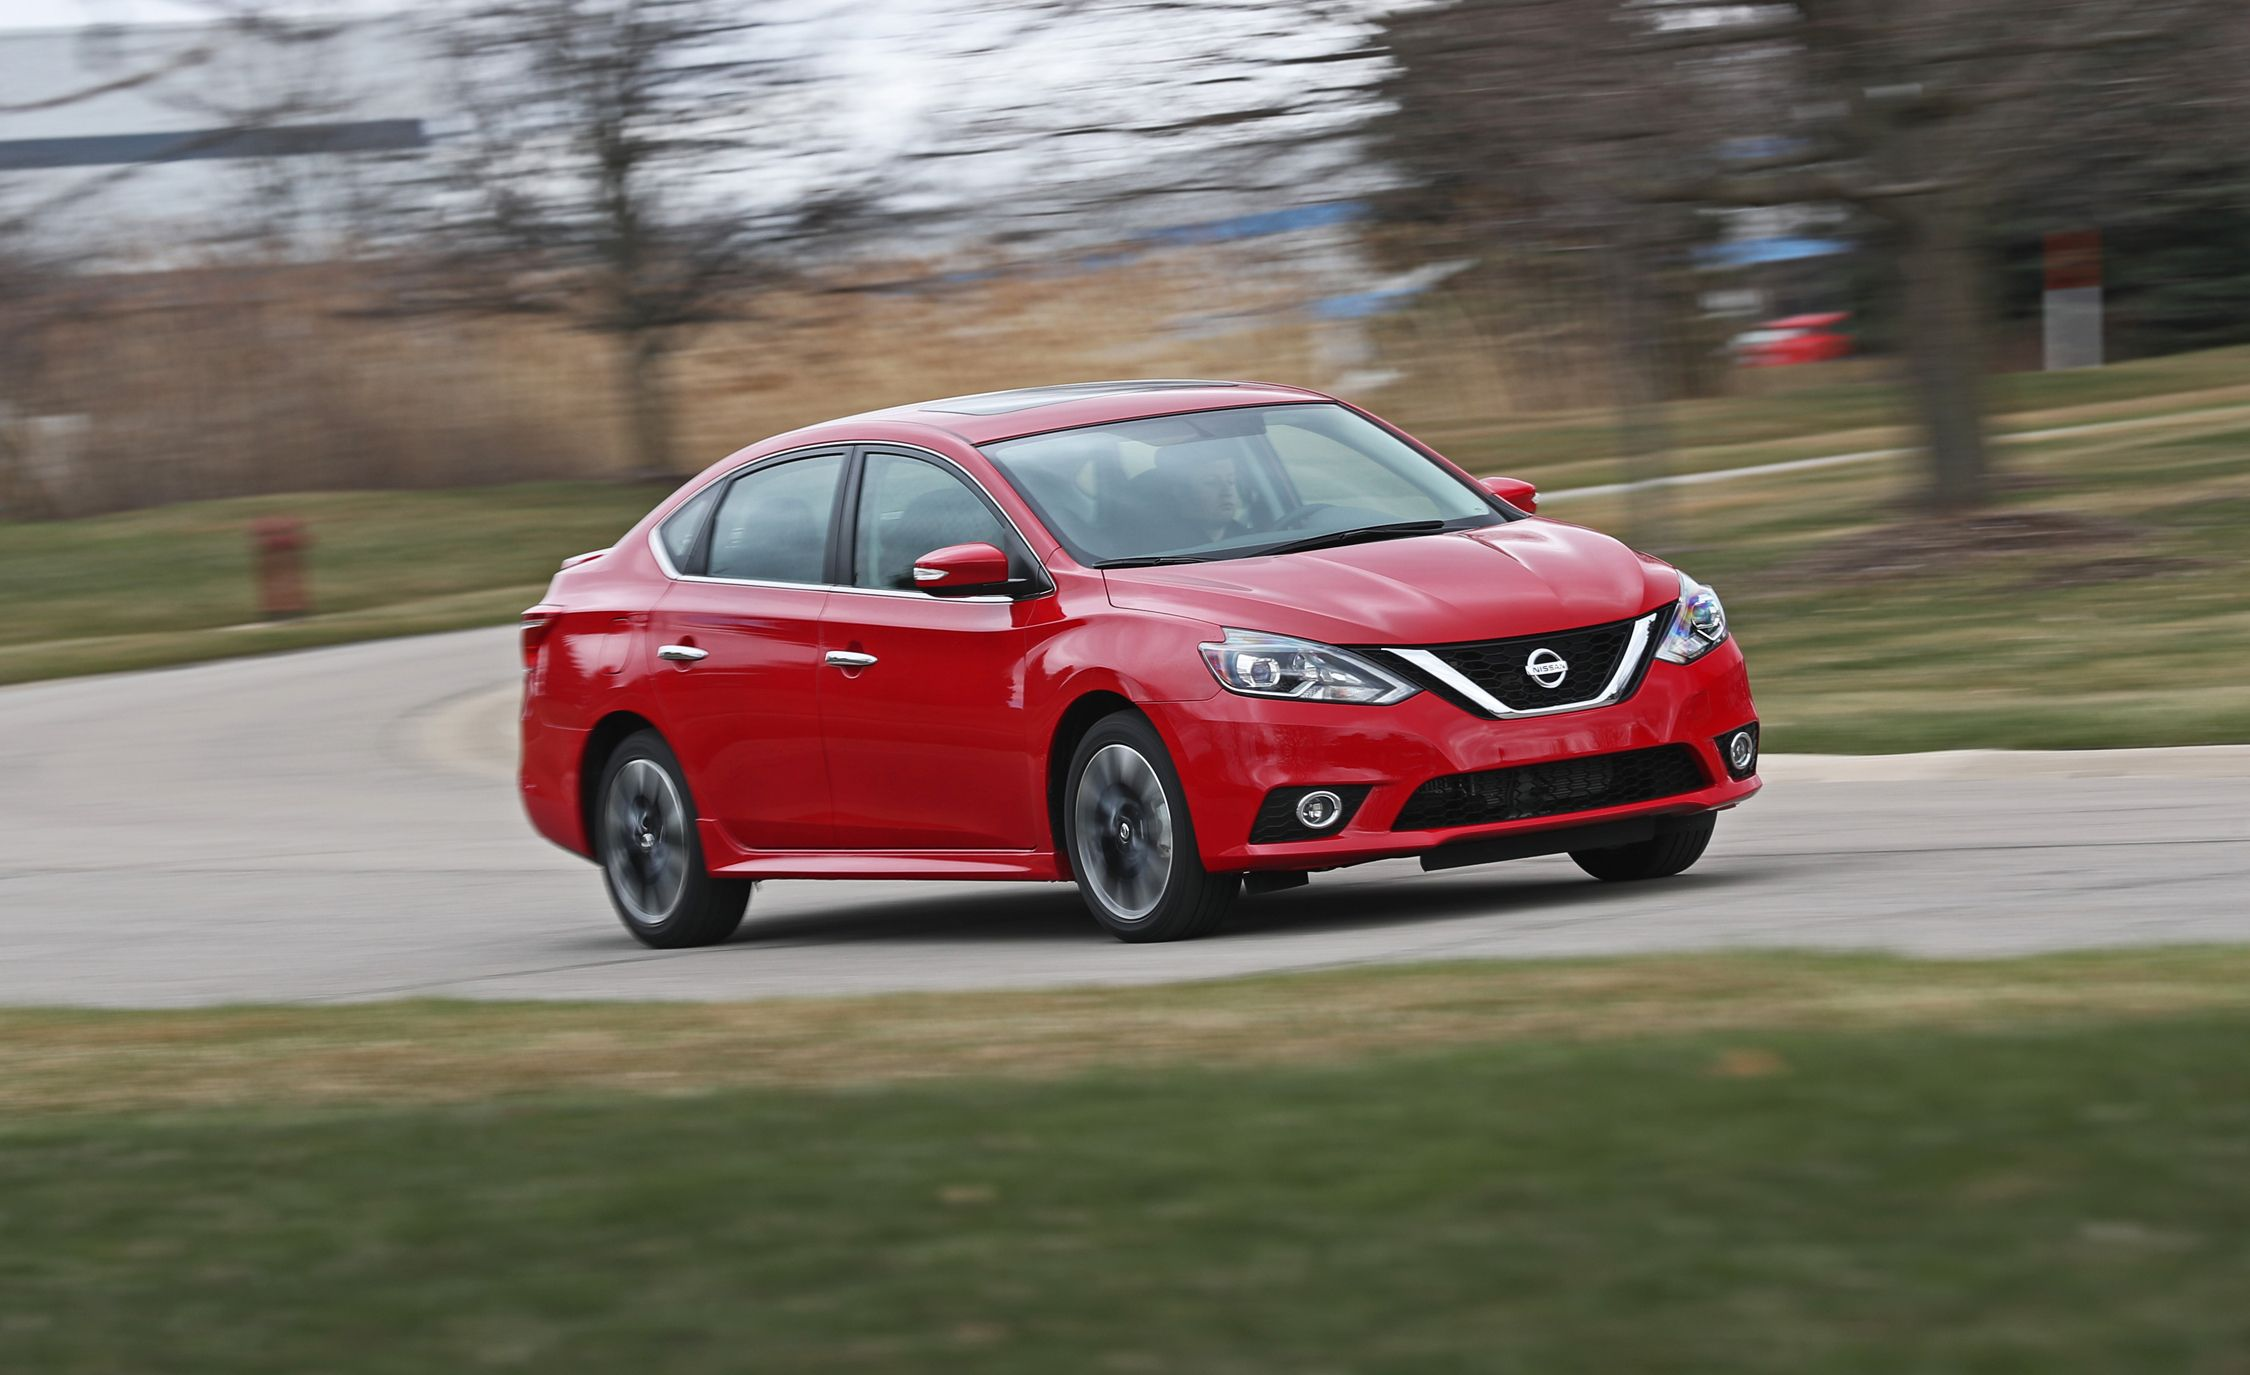 2018 Nissan Sentra SR Turbo Manual